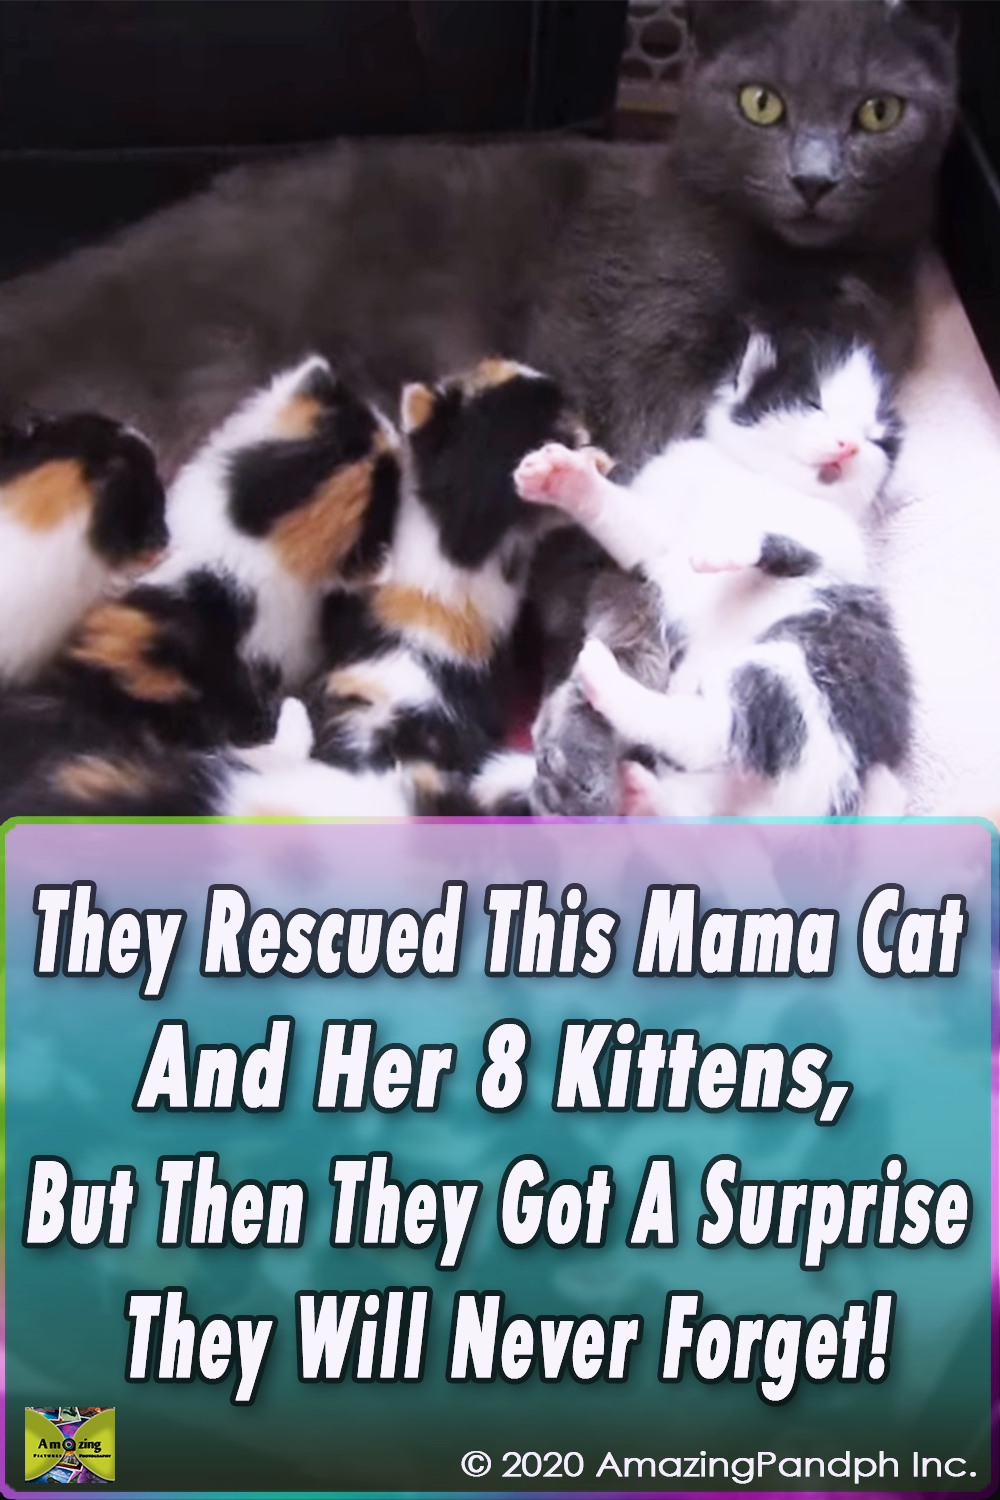 animals,viral,cats,rescue,save,life,helping,pets,kitten,lost,cat,kittens,viral video,viral stuff,viral post,most viewed,